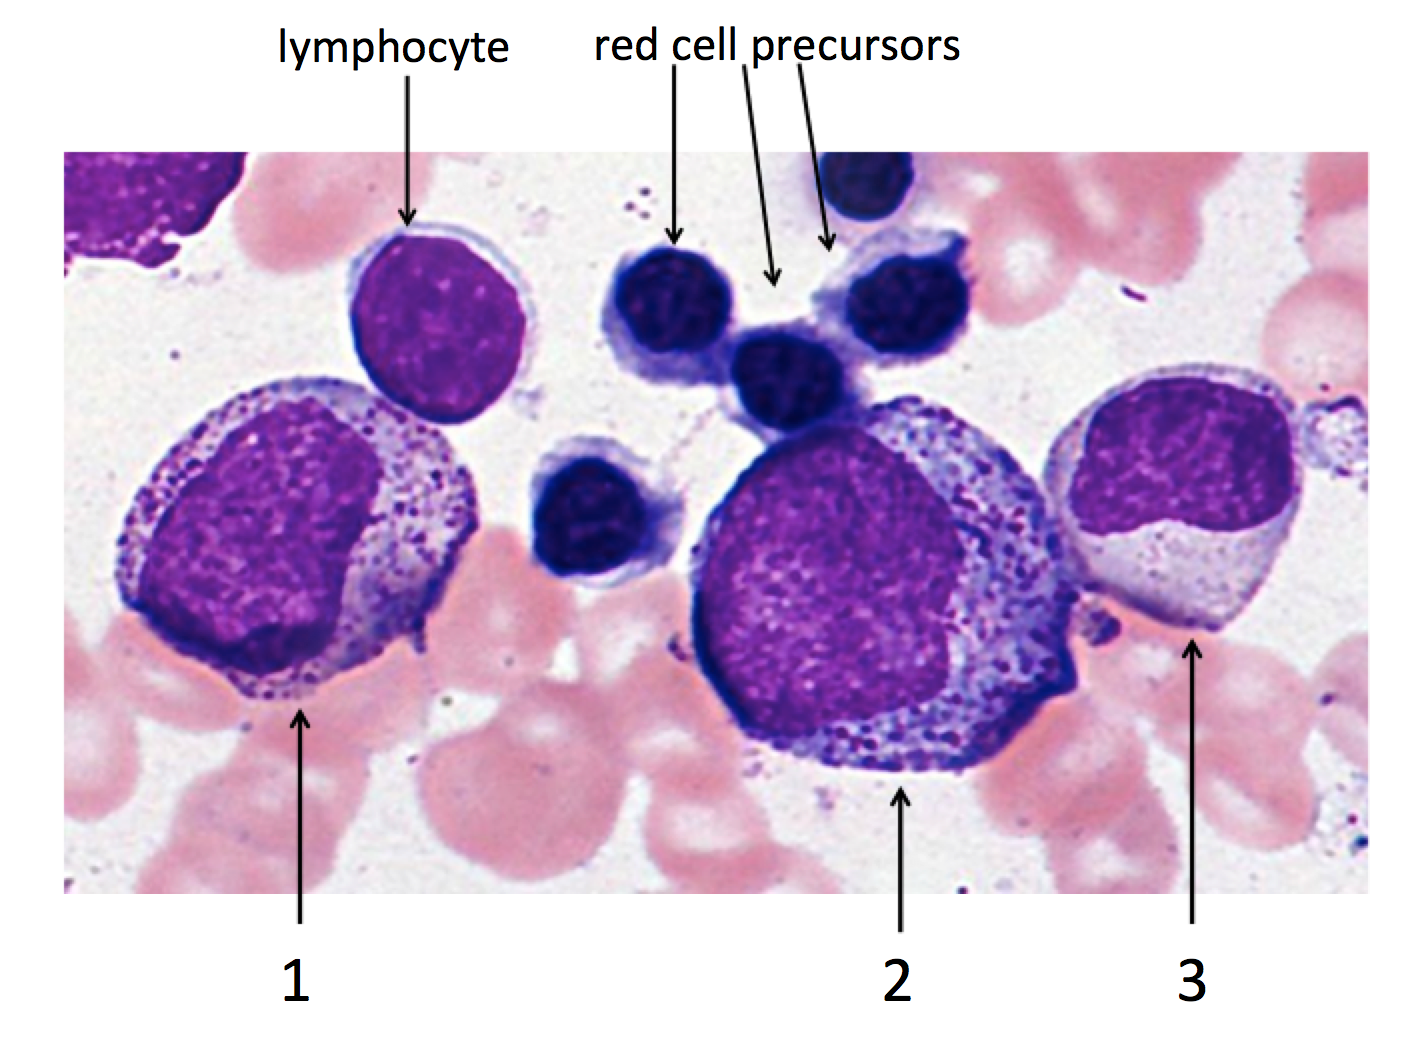 How to tell a promyelocyte apart from a myelocyte